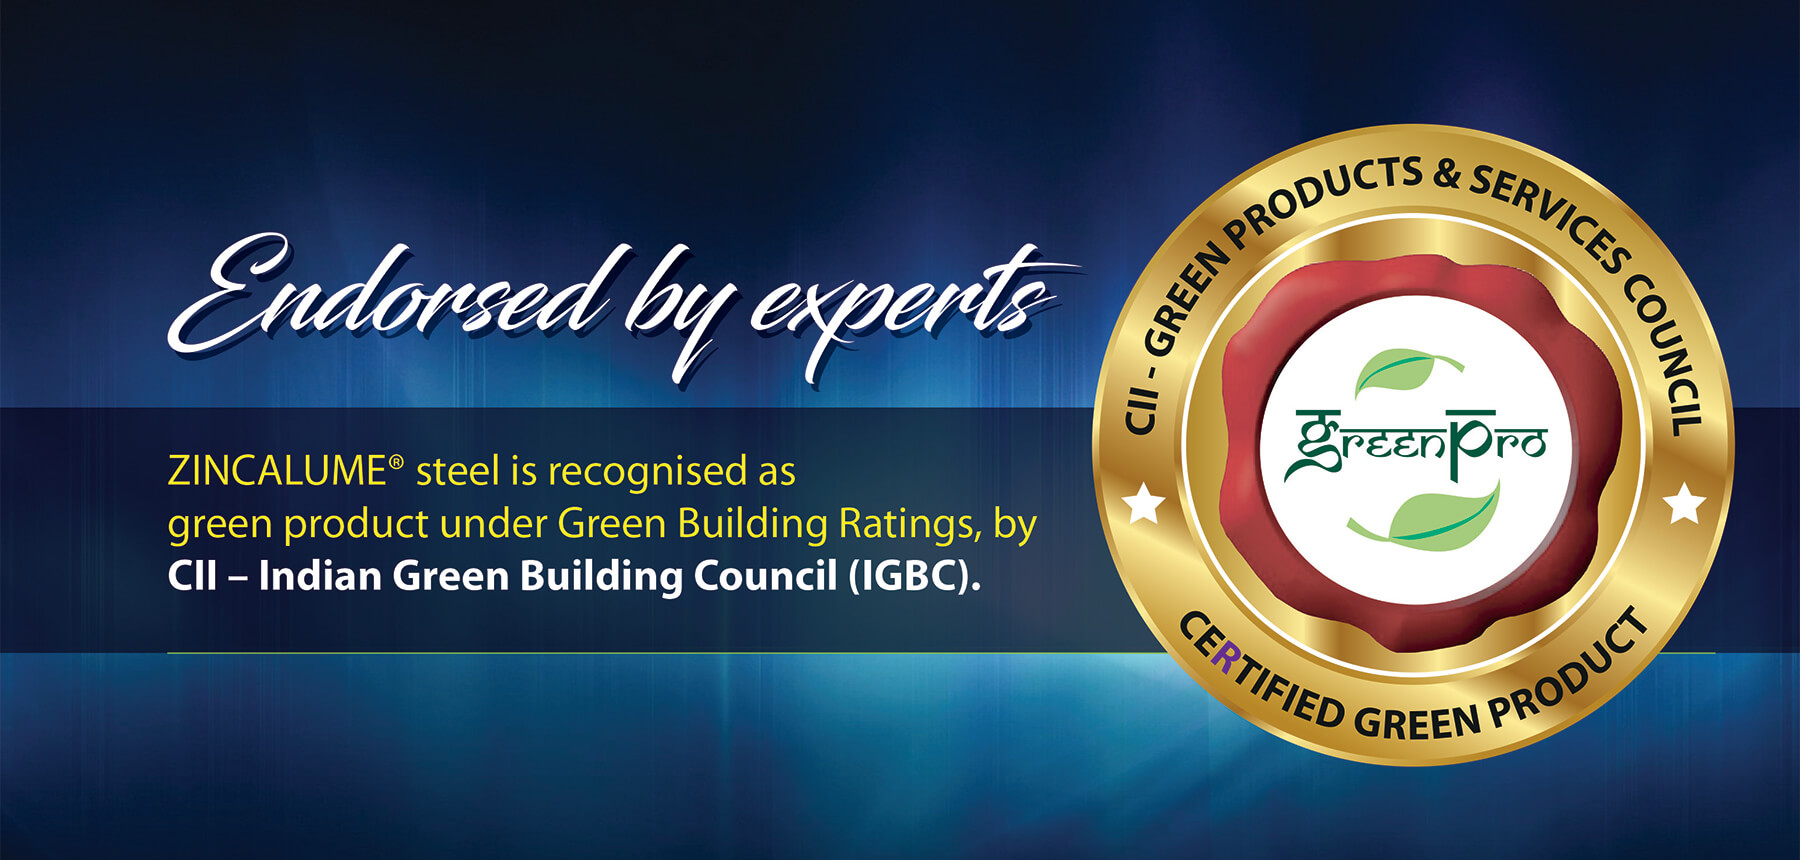 zincalume steel is recognised as cii green product